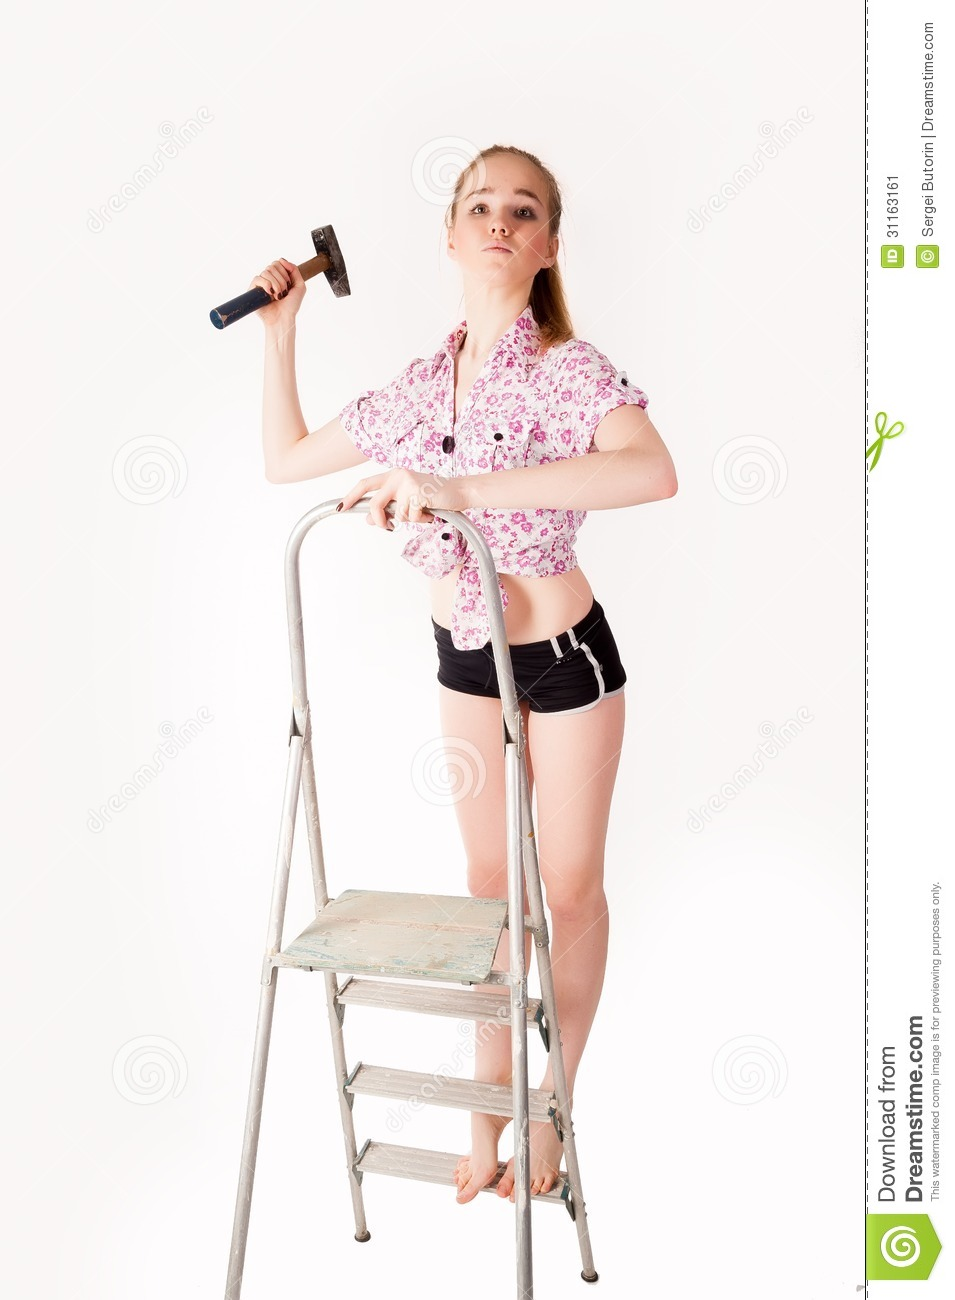 Use This Advice To Accentuate Your Own Home home-improvements-girl-ladder-hammer-her-hand-31163161